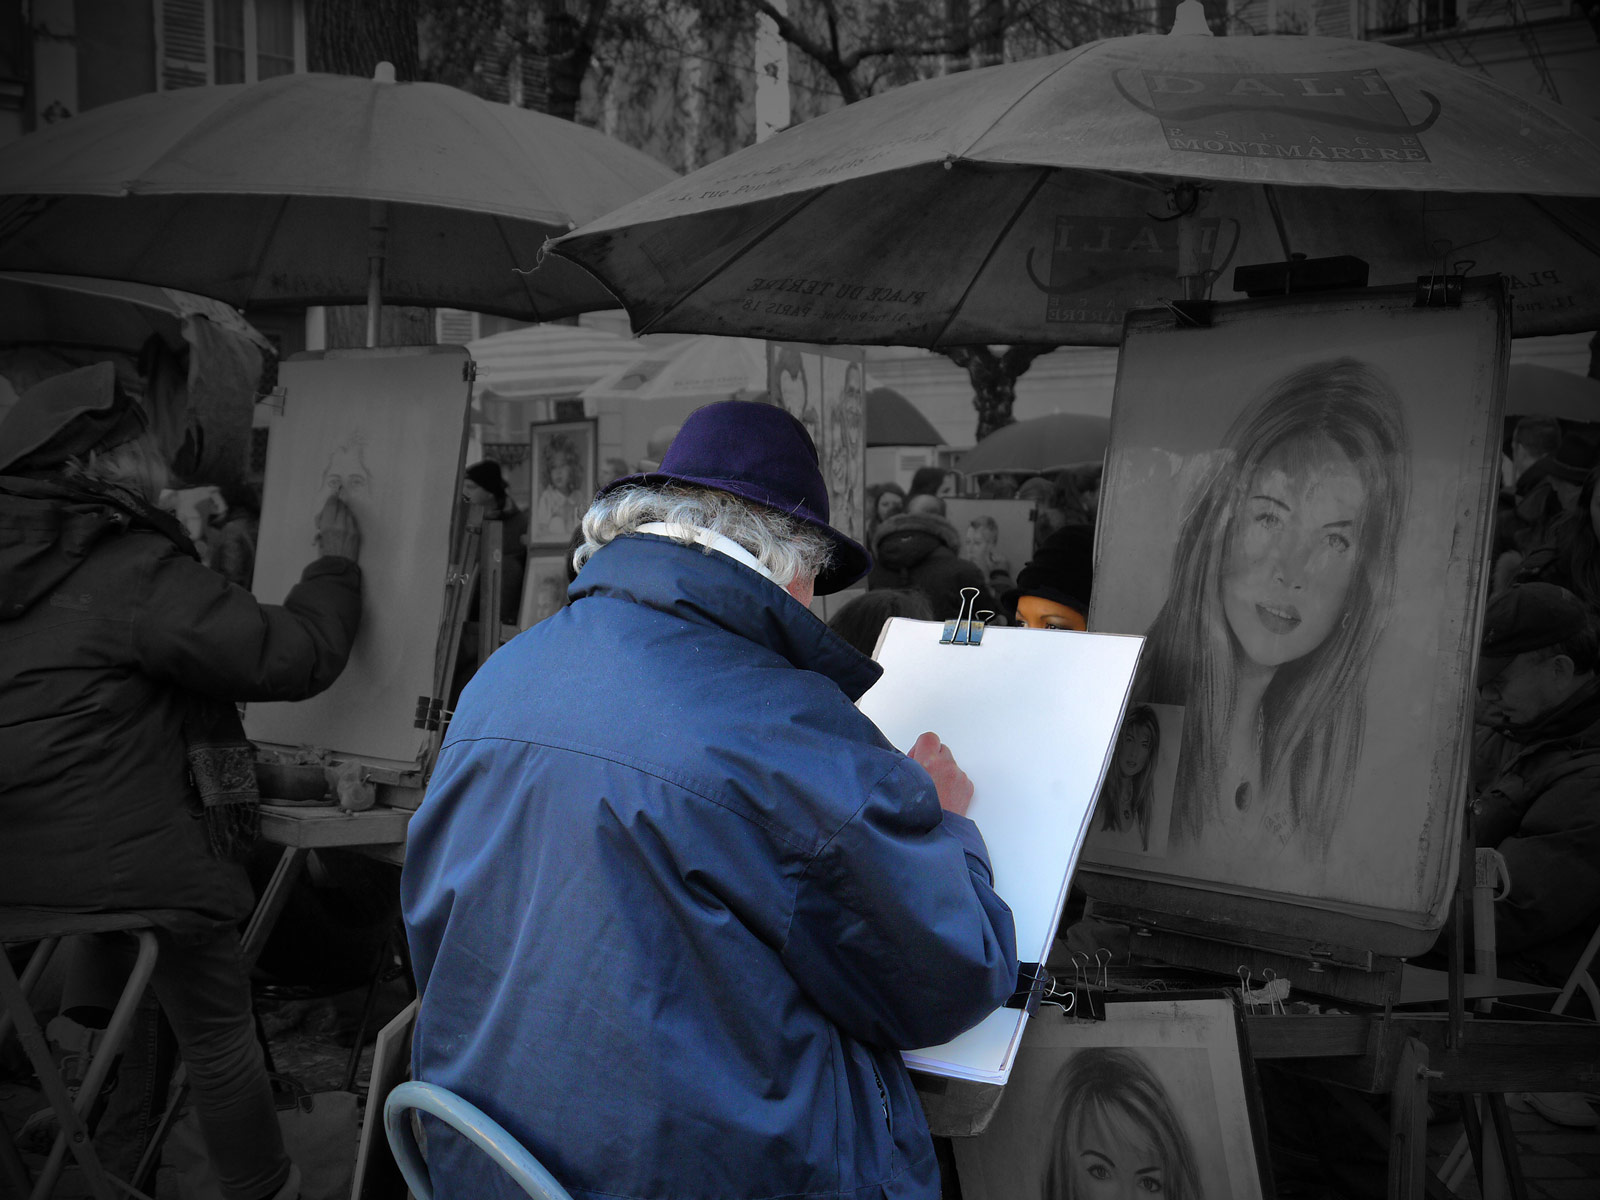 Crafting a Work of Art in Montmartre - Paris, France